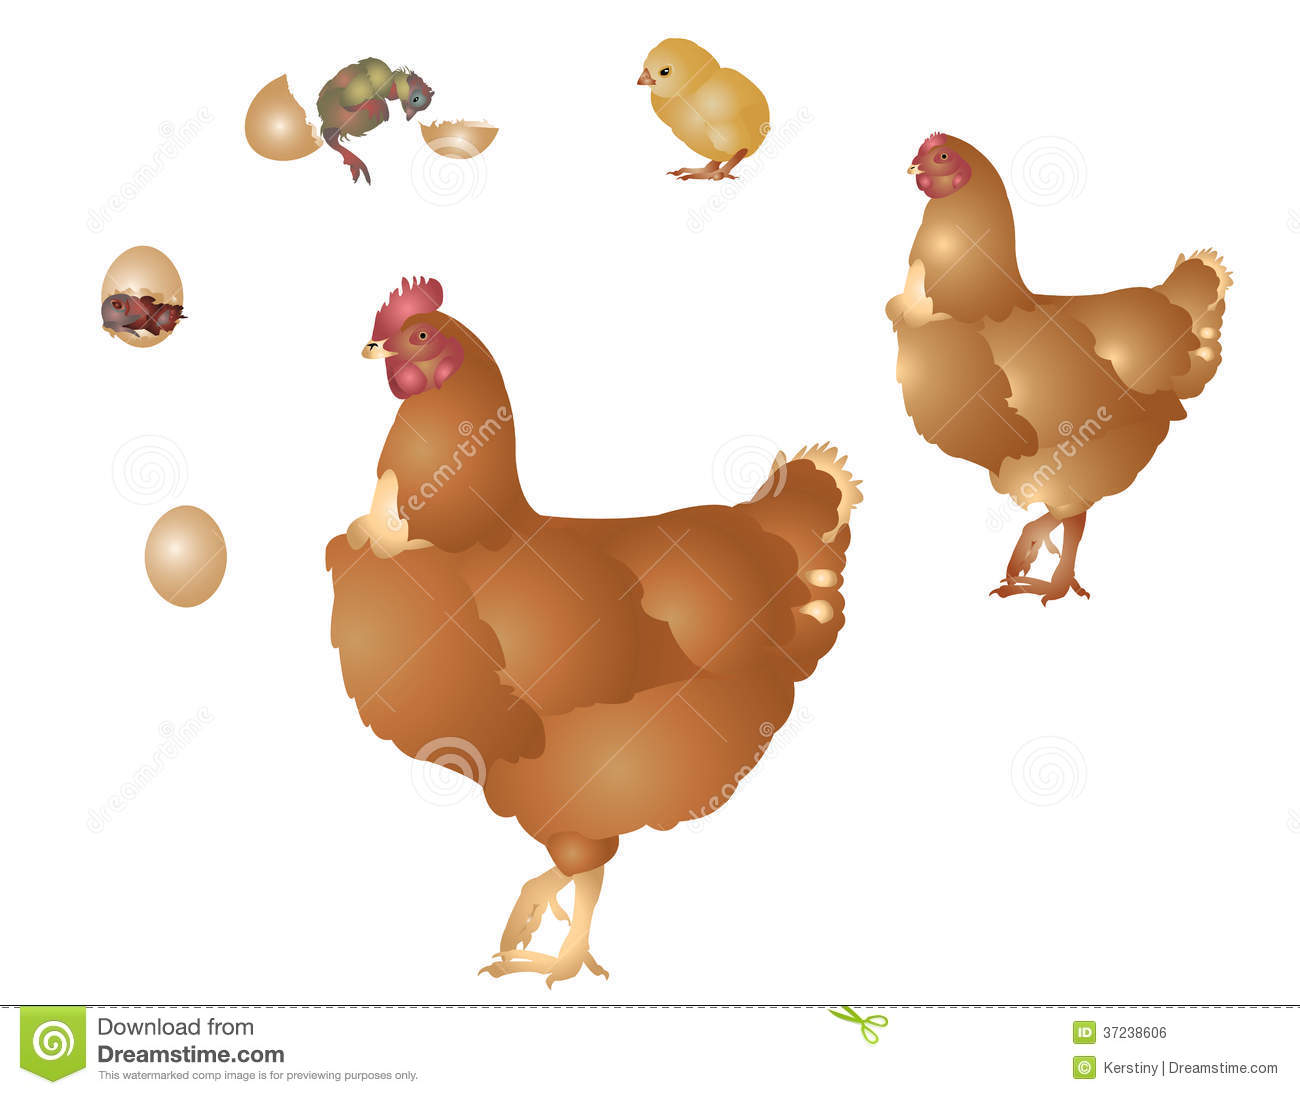 La vie de la poule illustration stock illustration du for Duree de vie des poules pondeuses